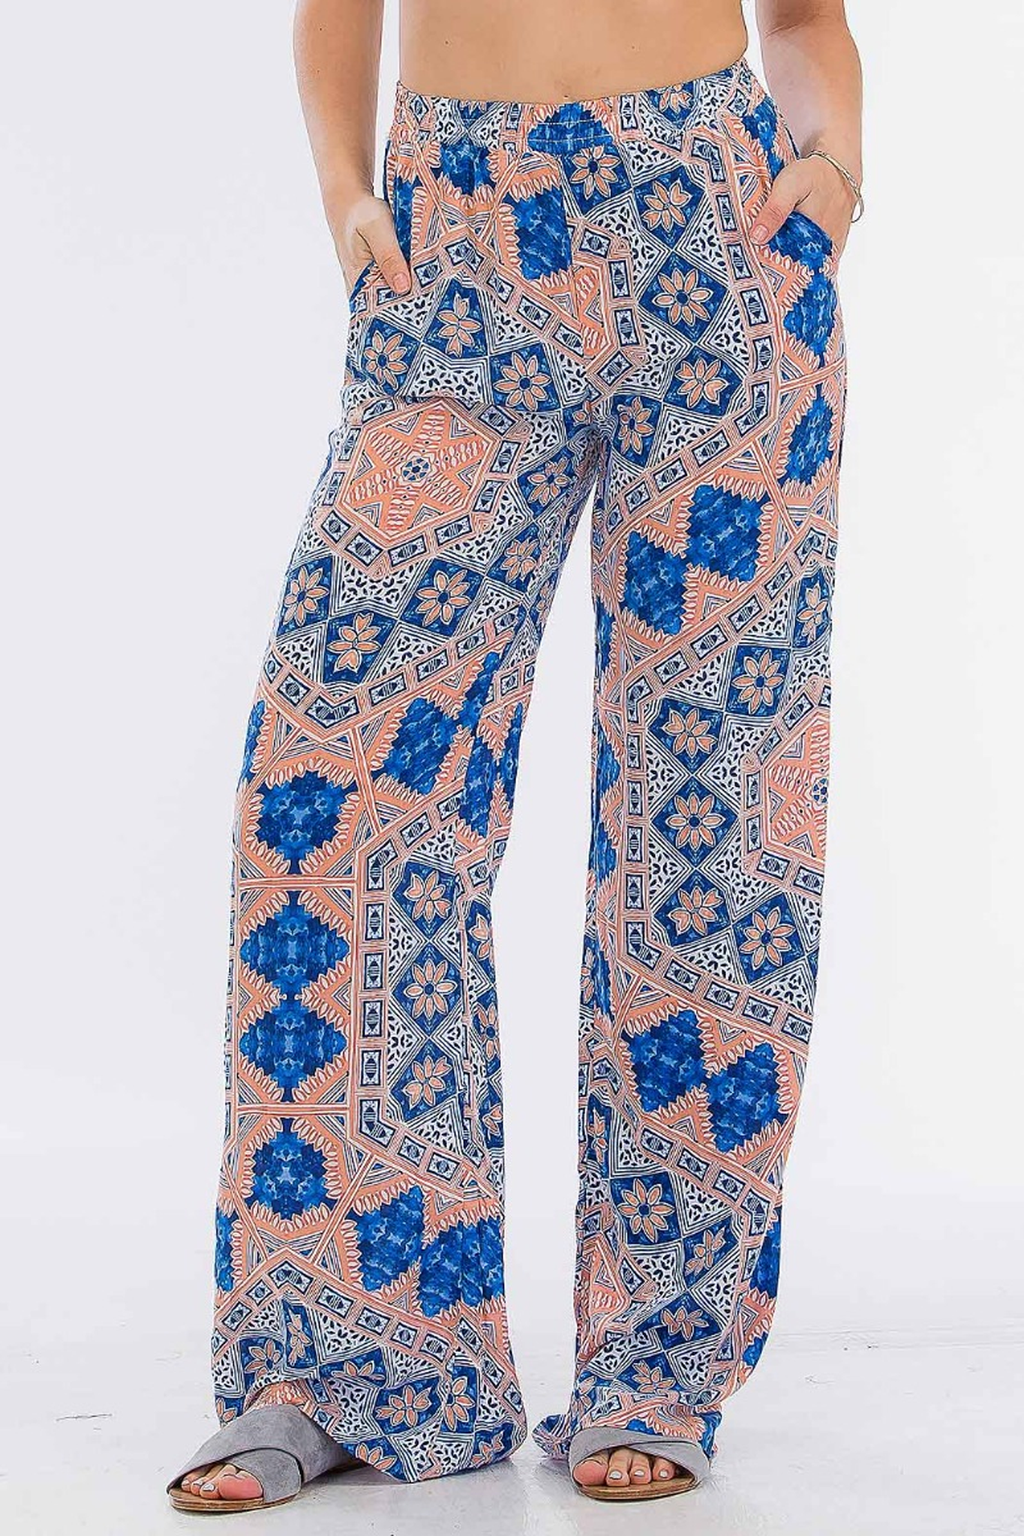 Jenna Printed Pant in Santorini - Boho Bum Island Clothing Swimwear Bohemian Boho west palm beach  Miami florida  fall fashion spring fashion online shopping ootd blogger style swim boutique